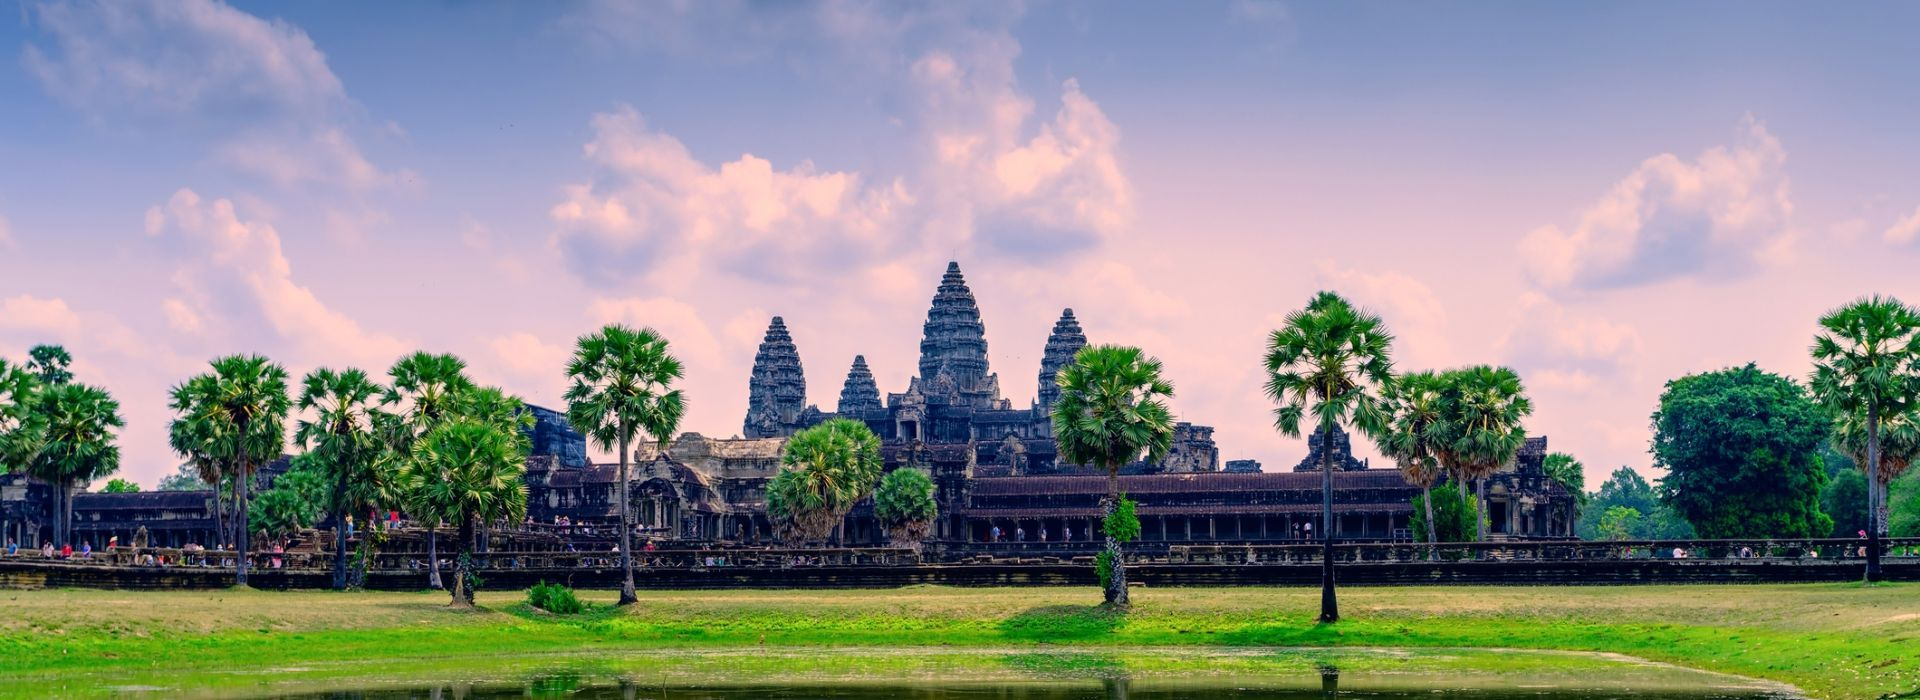 Beach, romance, getaways and relaxation Tours in Angkor Wat